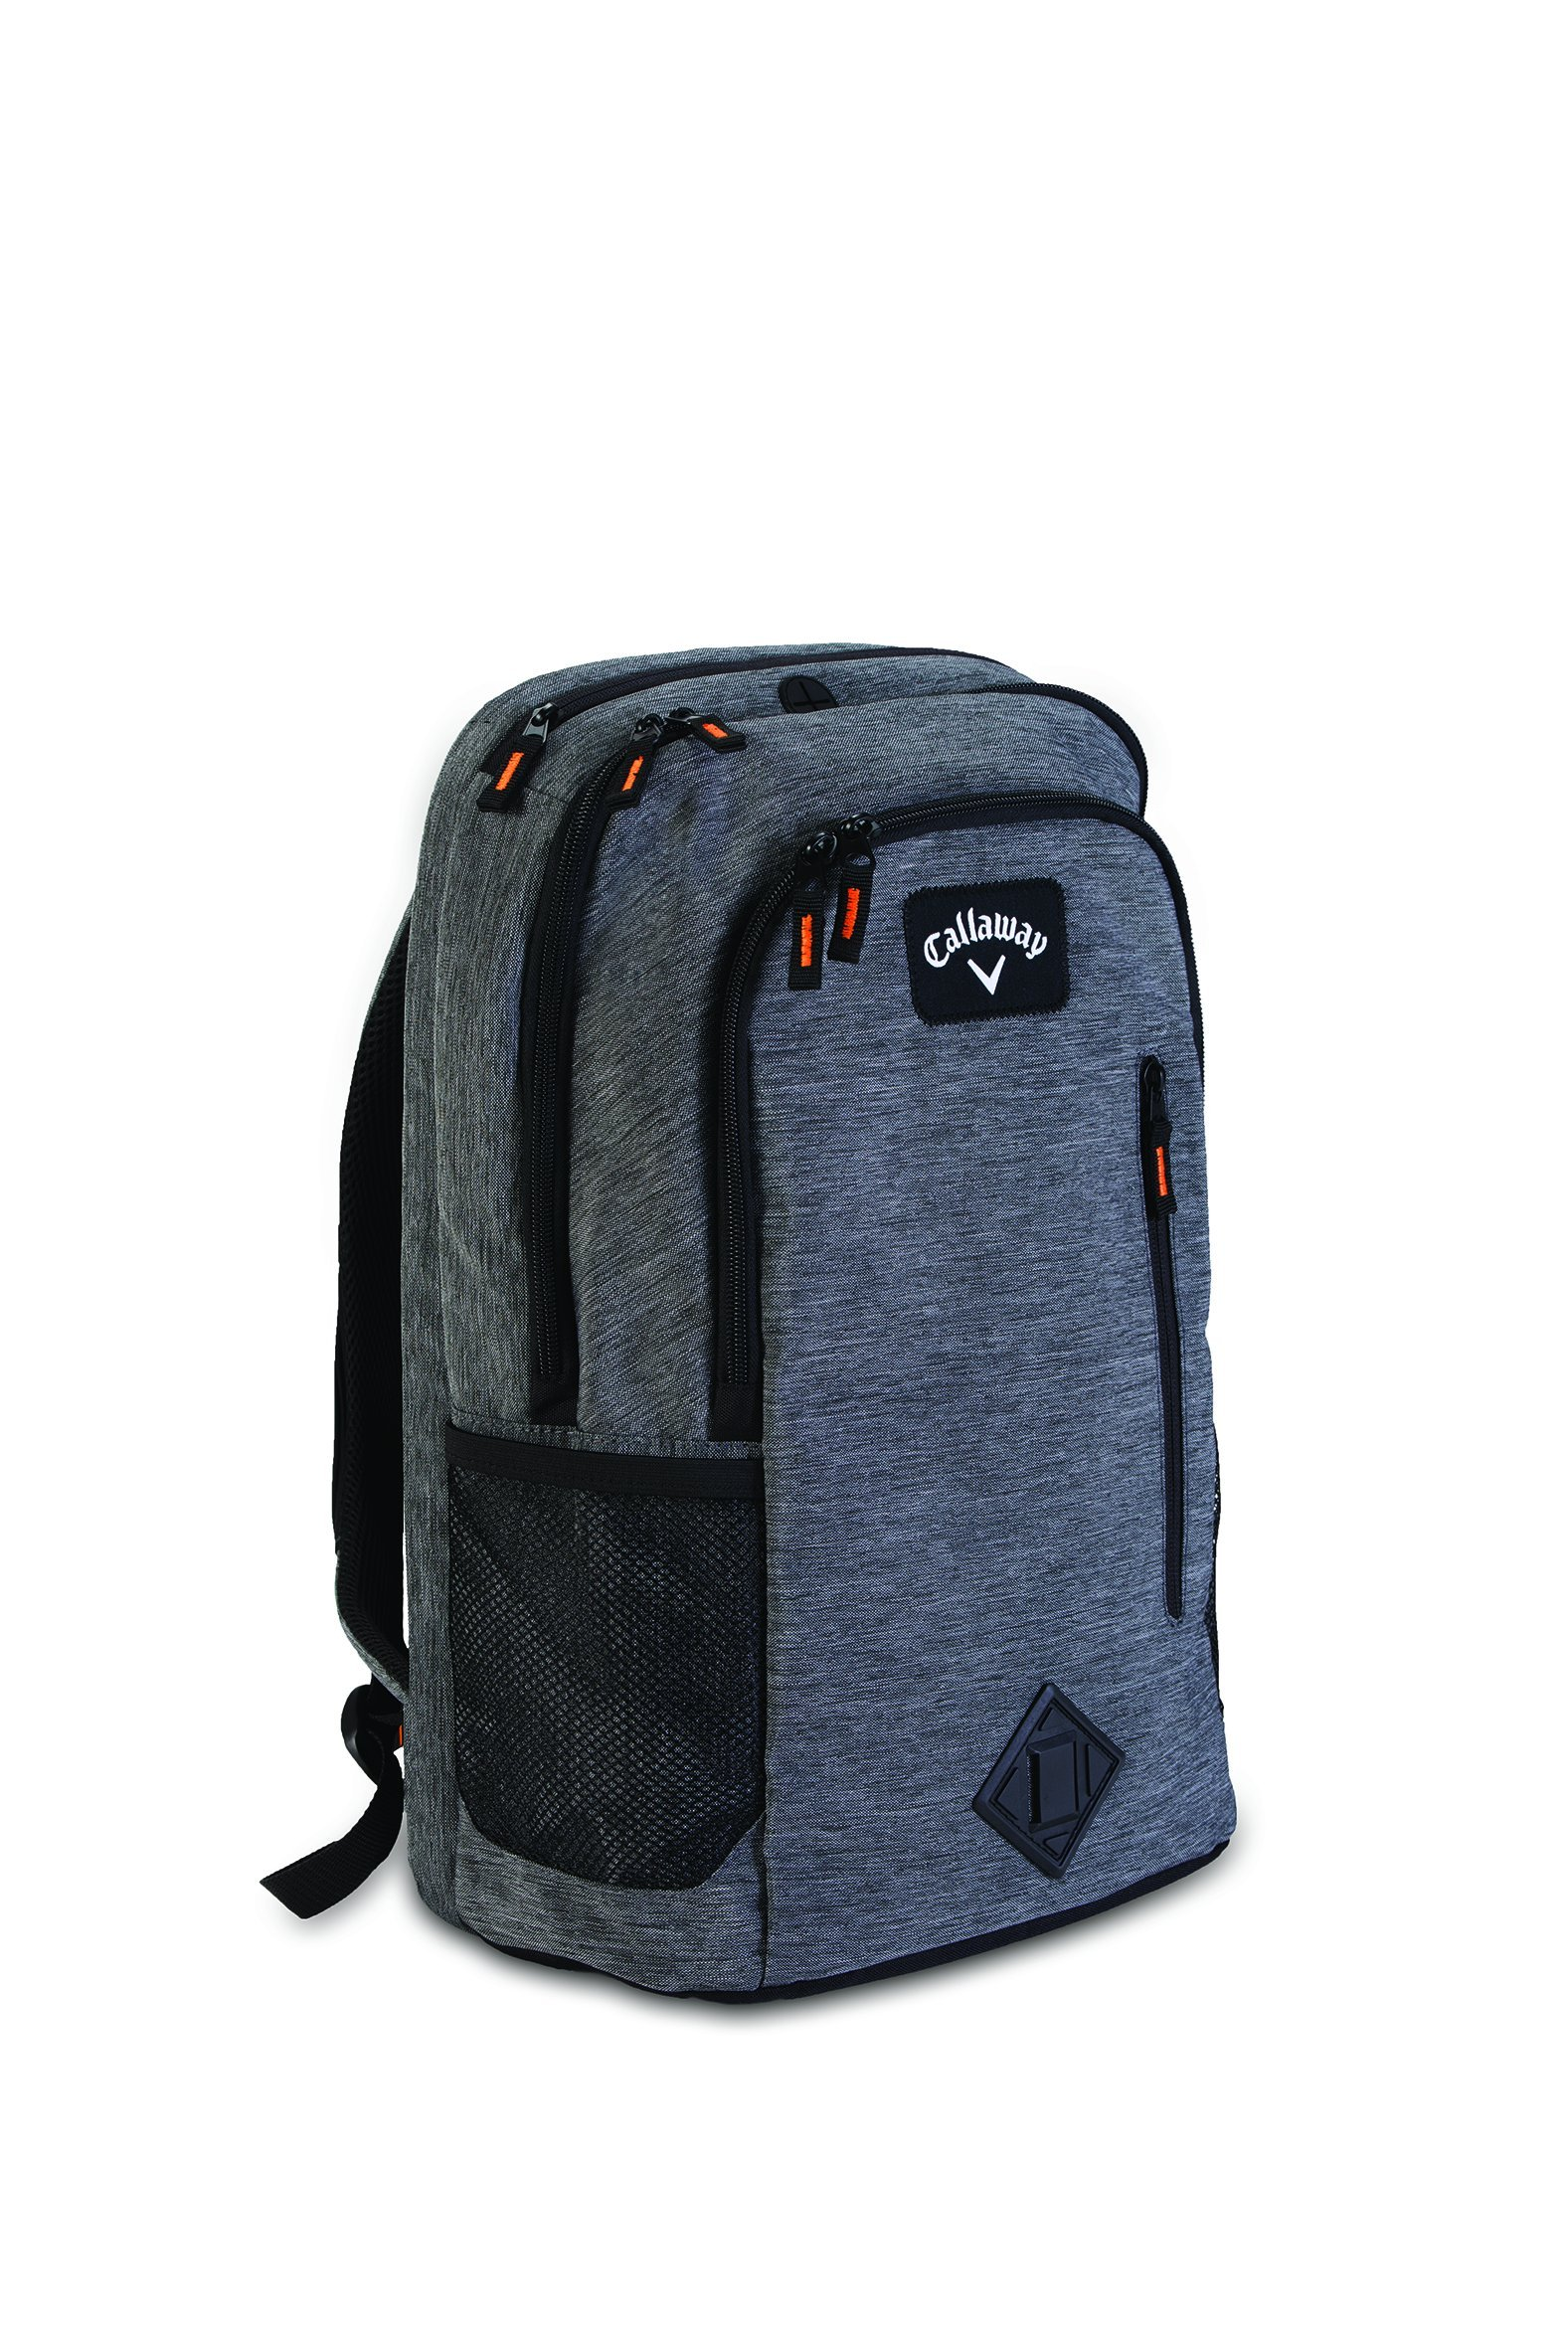 Callaway Clubhouse Backpack ( by Callaway